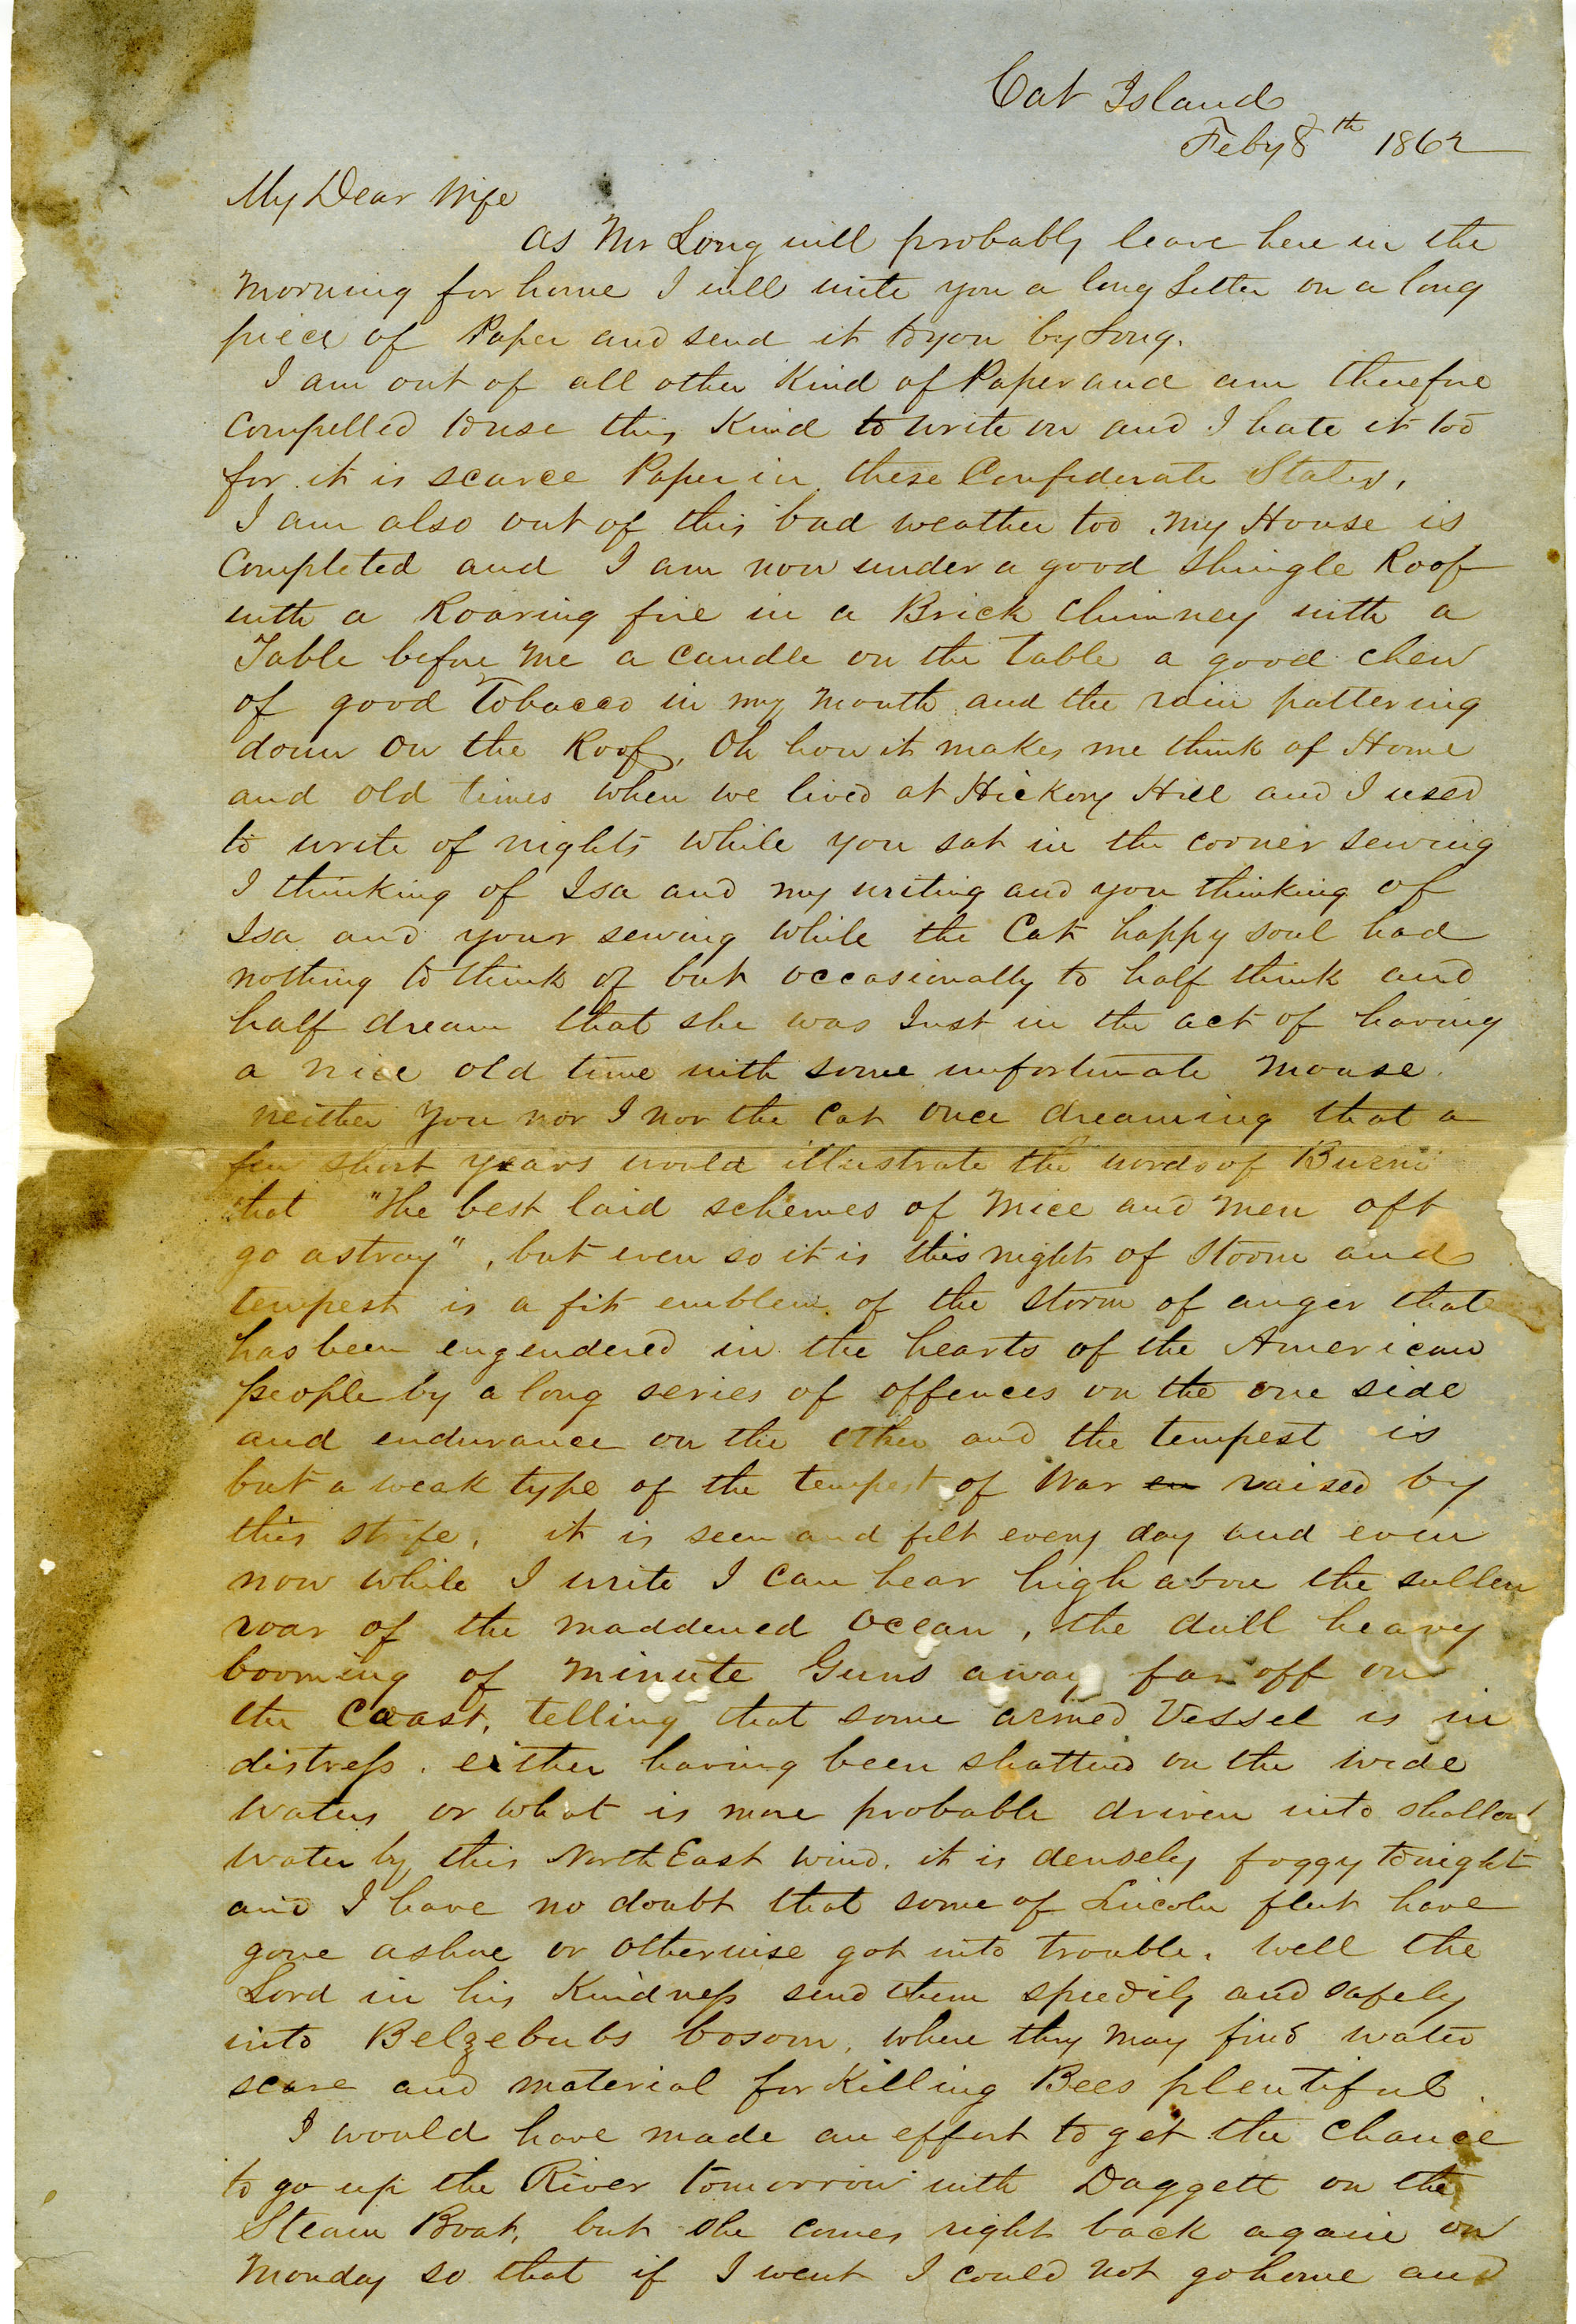 Letter from John R. Beaty to his wife Melvina, February 8, 1862